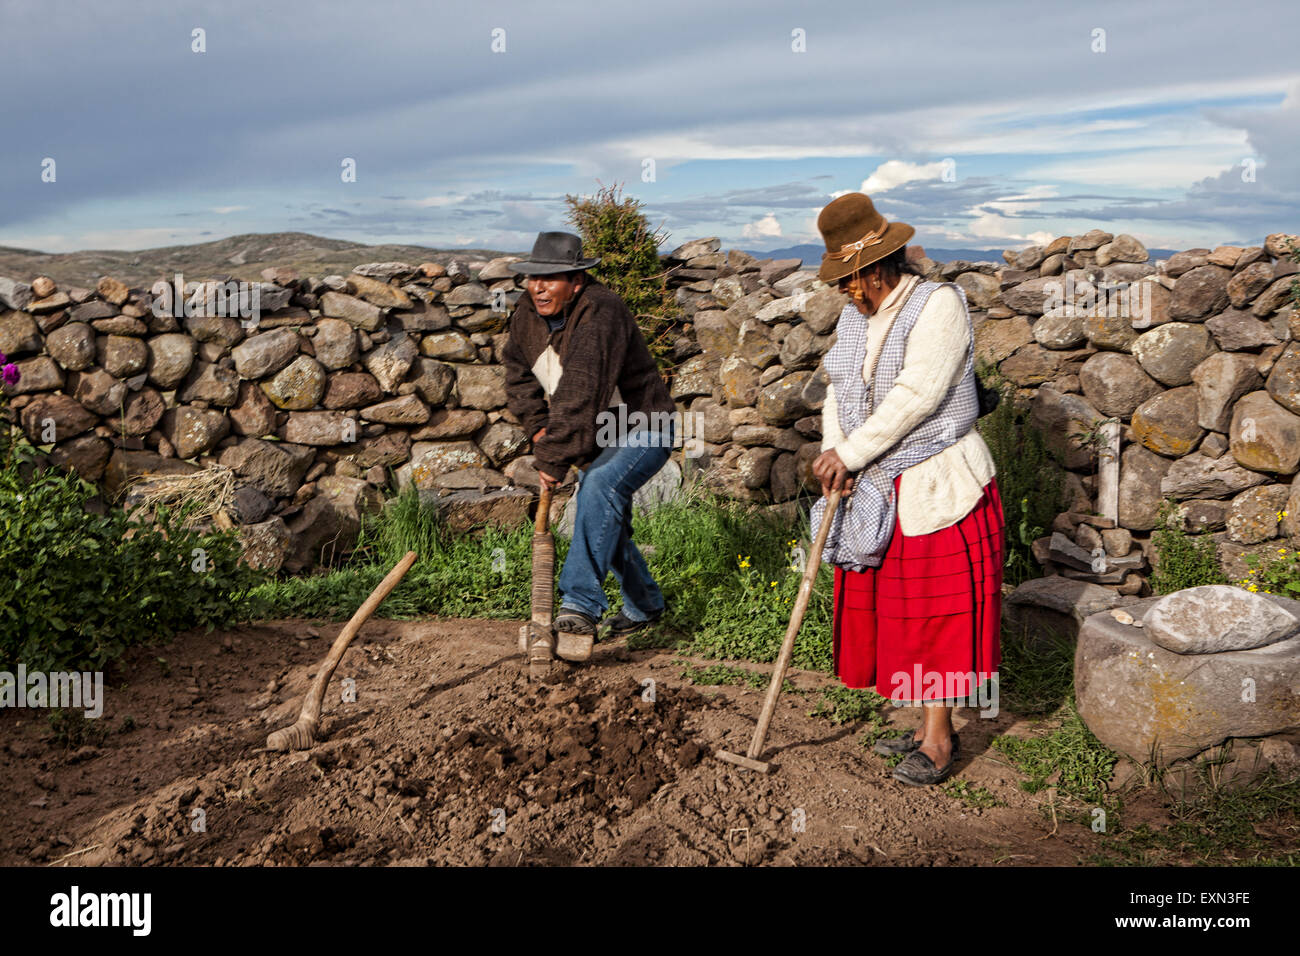 Older Traditional Peruvian Farmers Demonstrate How To Plant Potatoes In The  Andean Soil